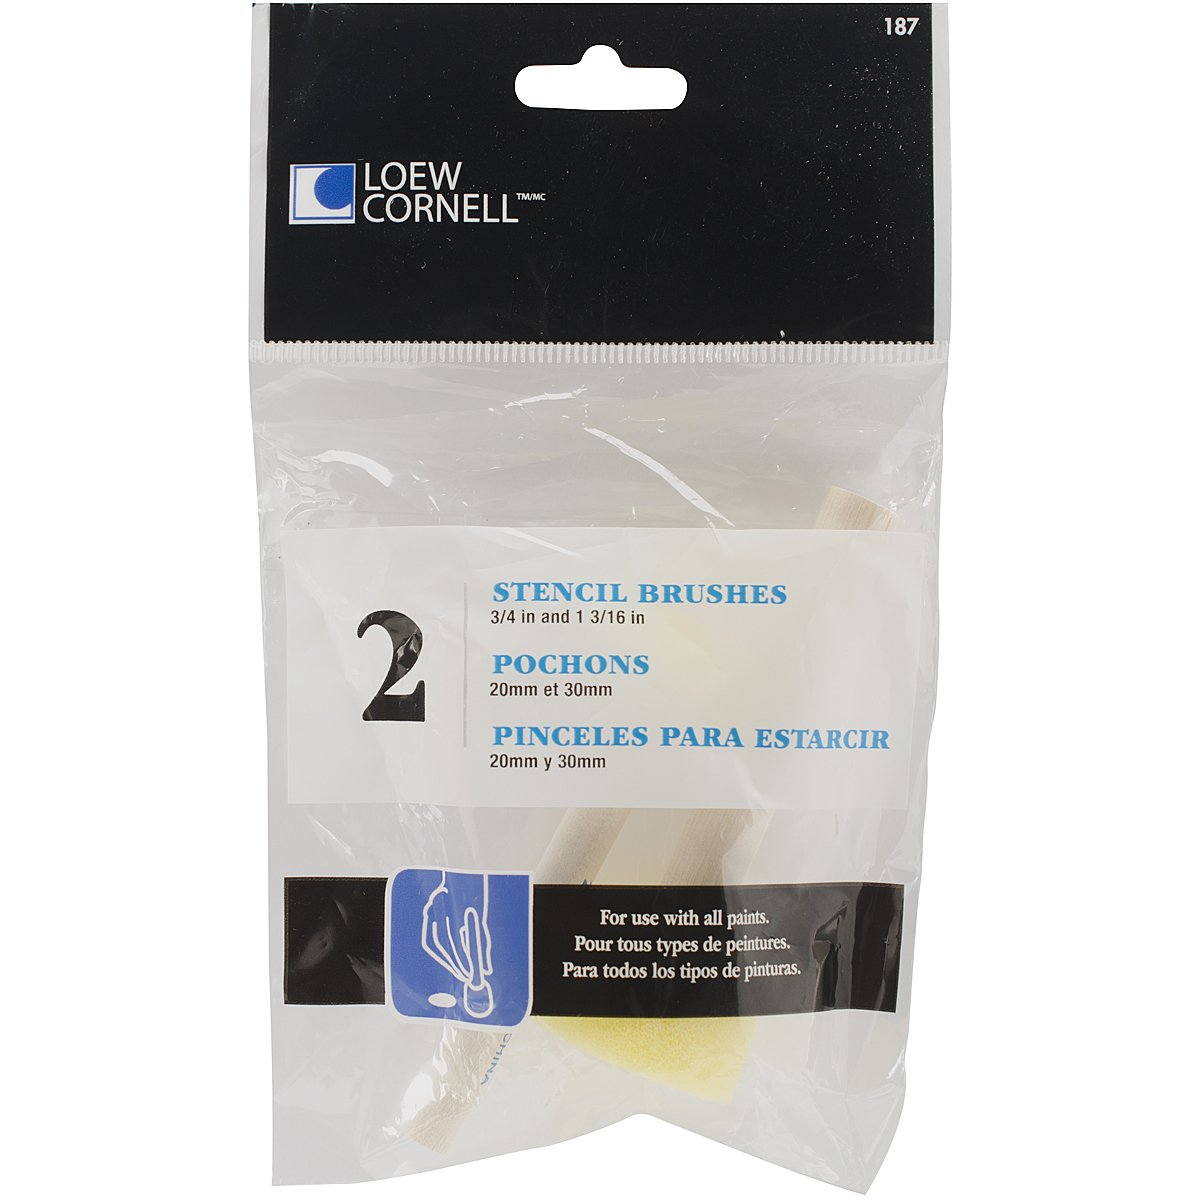 Loew-Cornell Round Sponge Stencil Brushes, 20mm/30mm, 2-Pack by Loew-Cornell